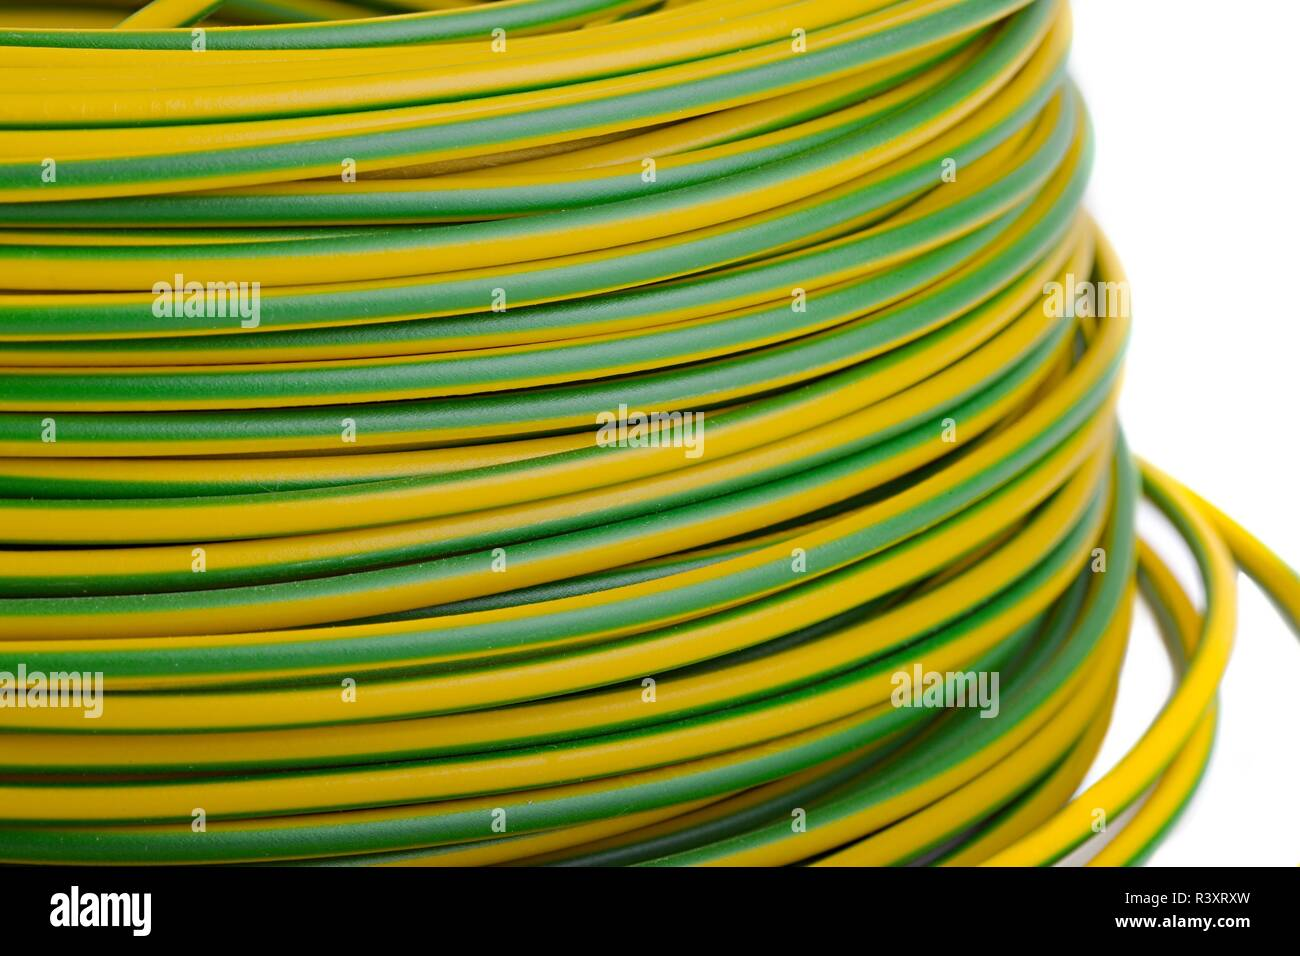 Insulated Soil Stock Photos Images Alamy Wiring Icf Basement Cable Roll Image